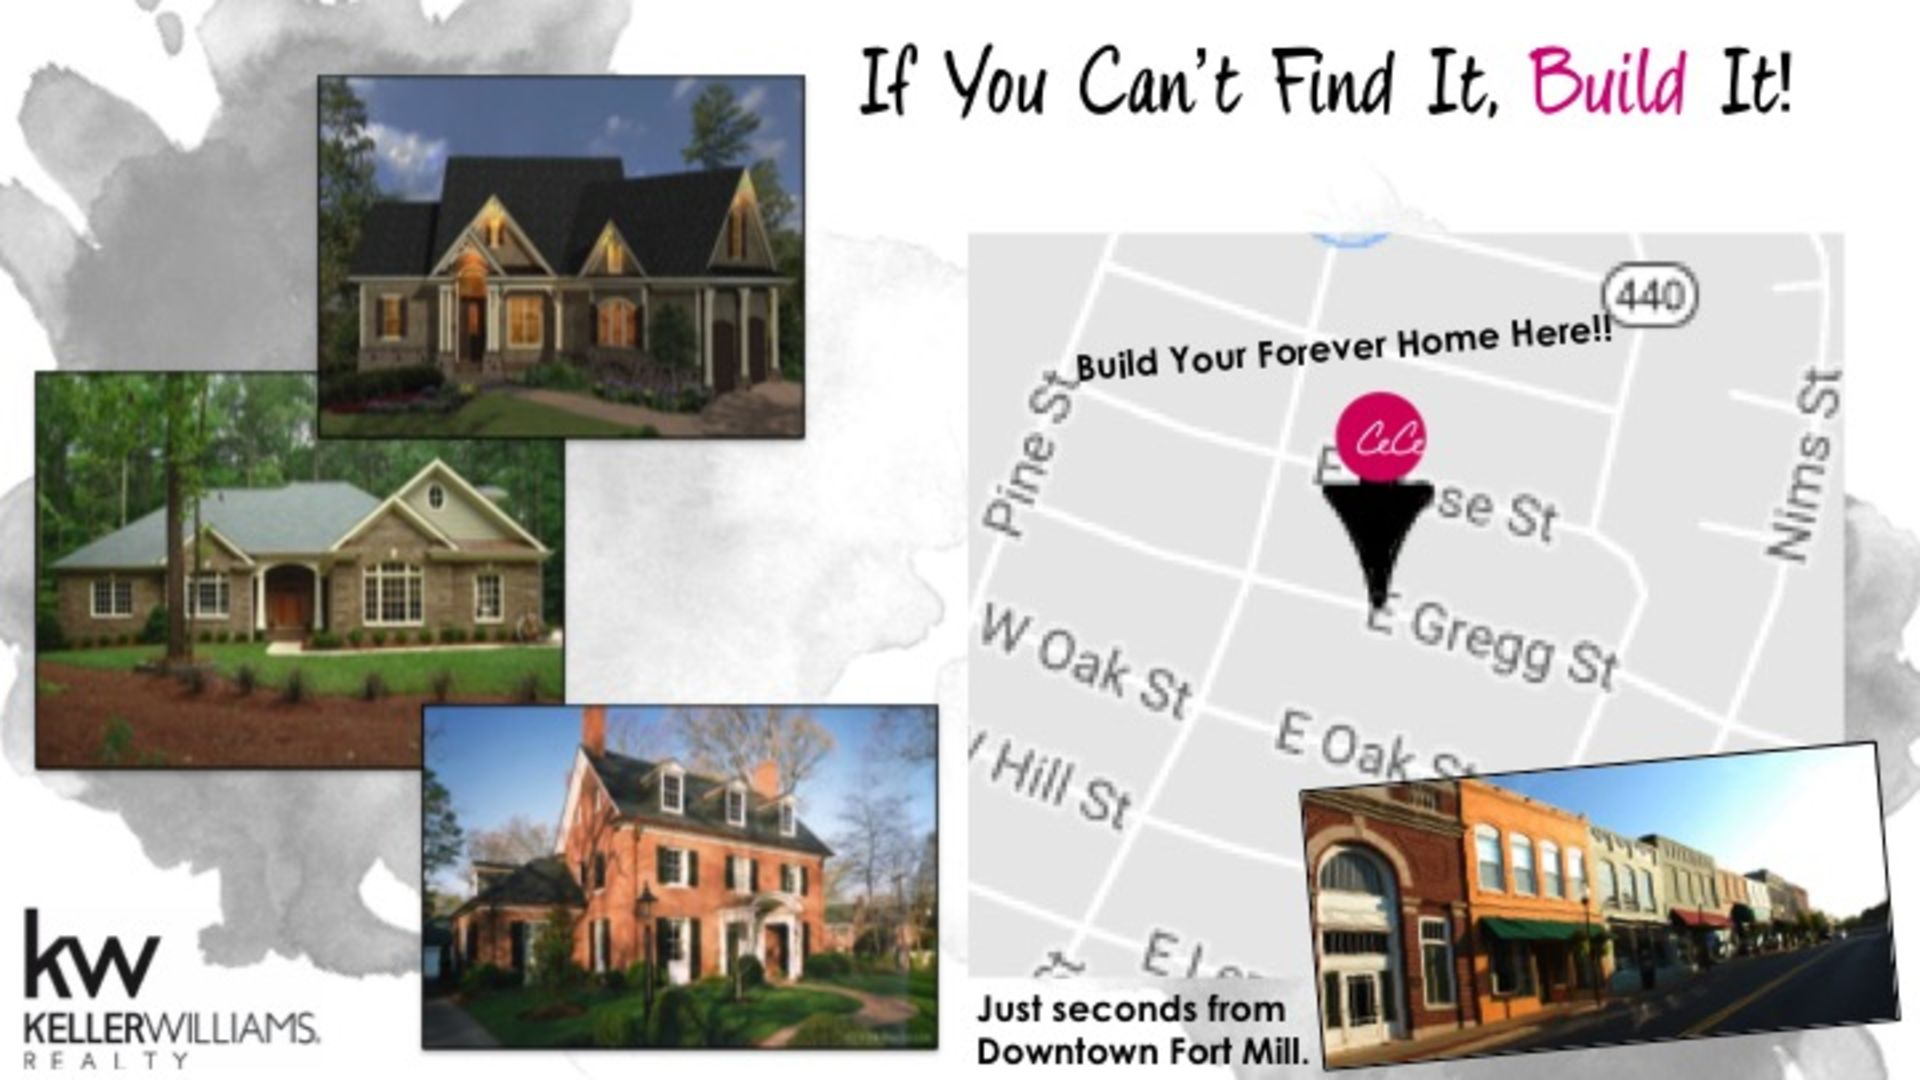 If You Can't Find It, Build It!